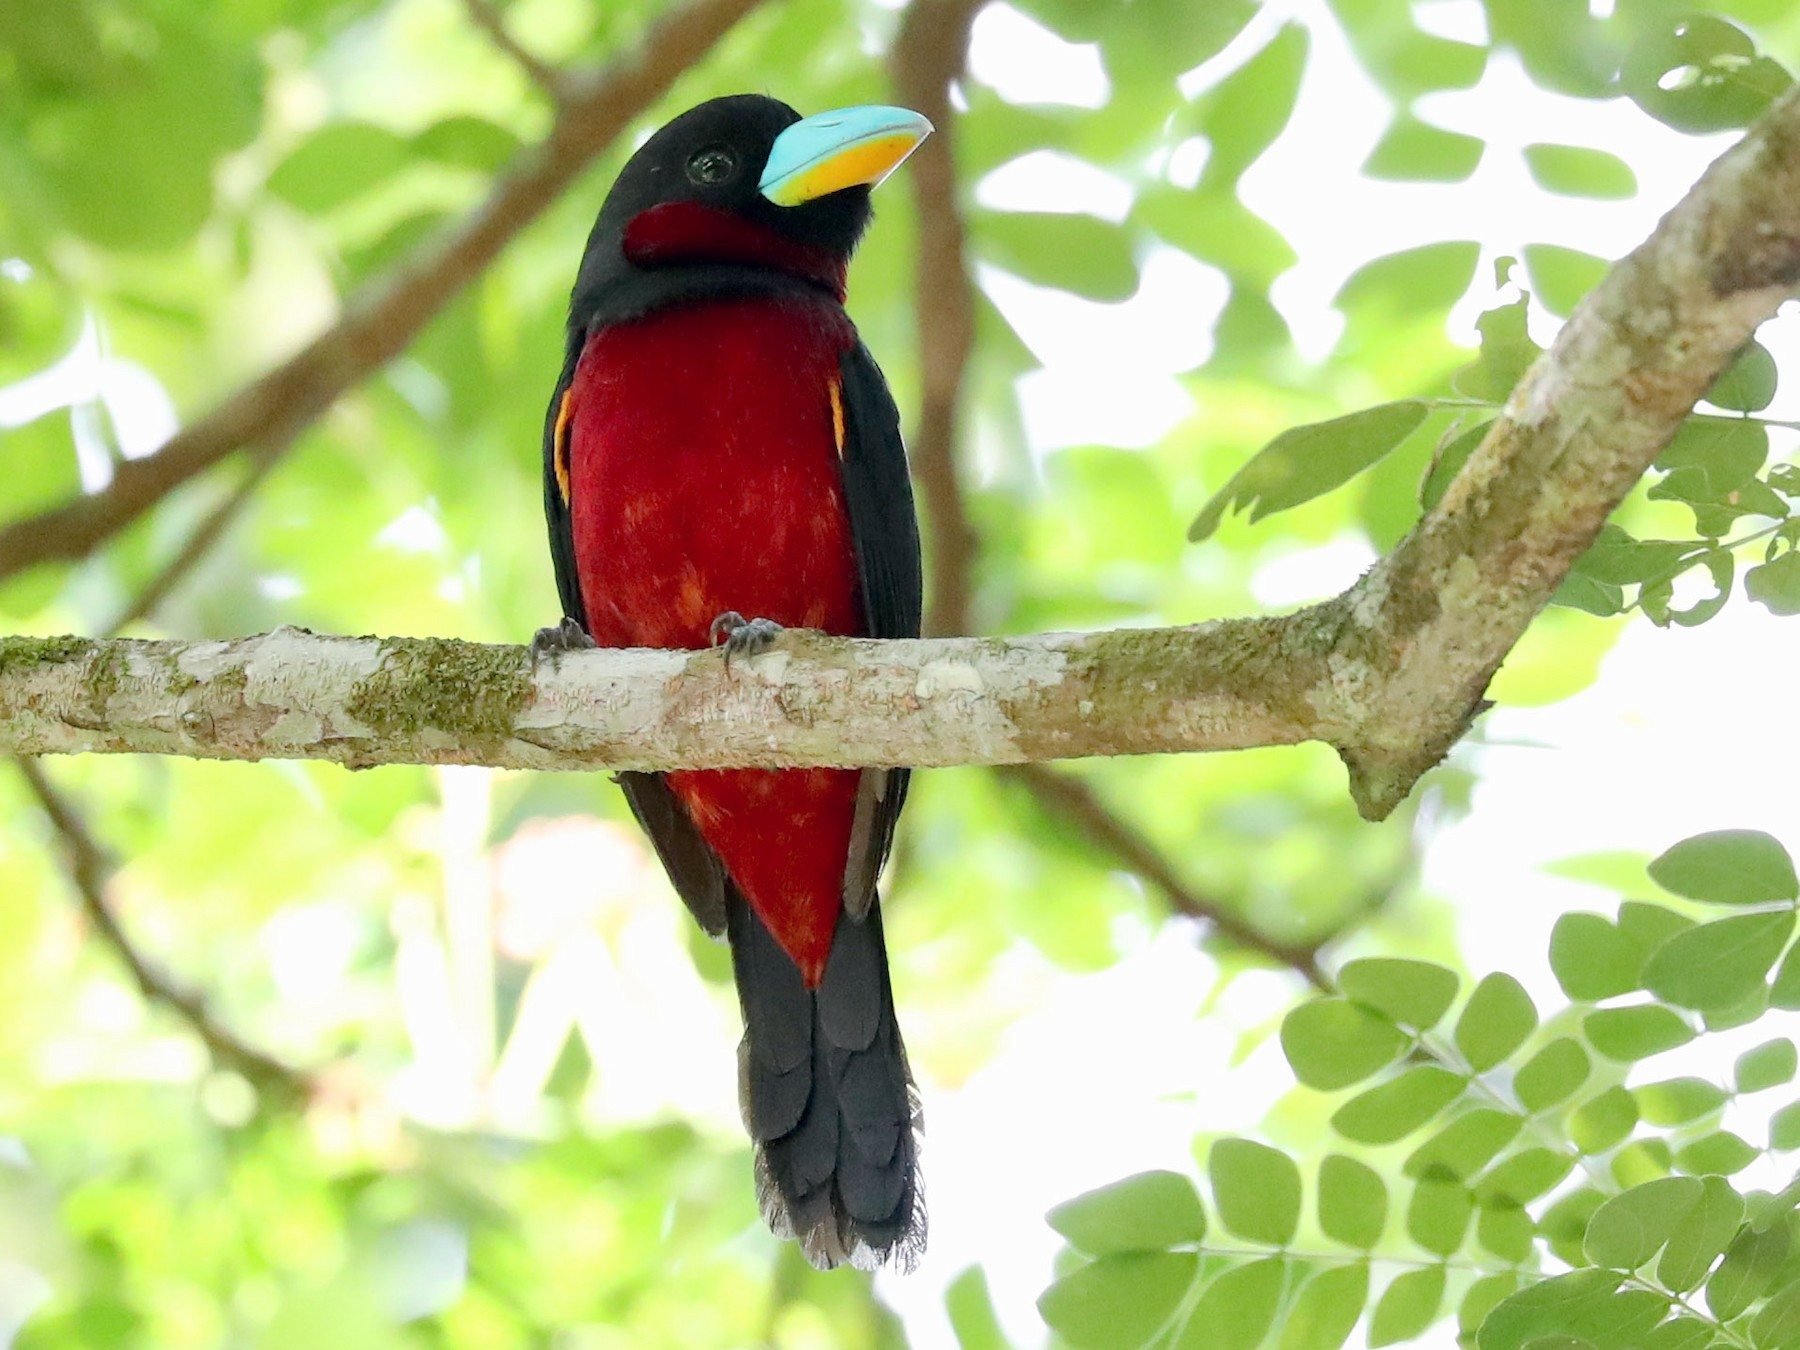 Black-and-red Broadbill - Ting-Wei (廷維) HUNG (洪)